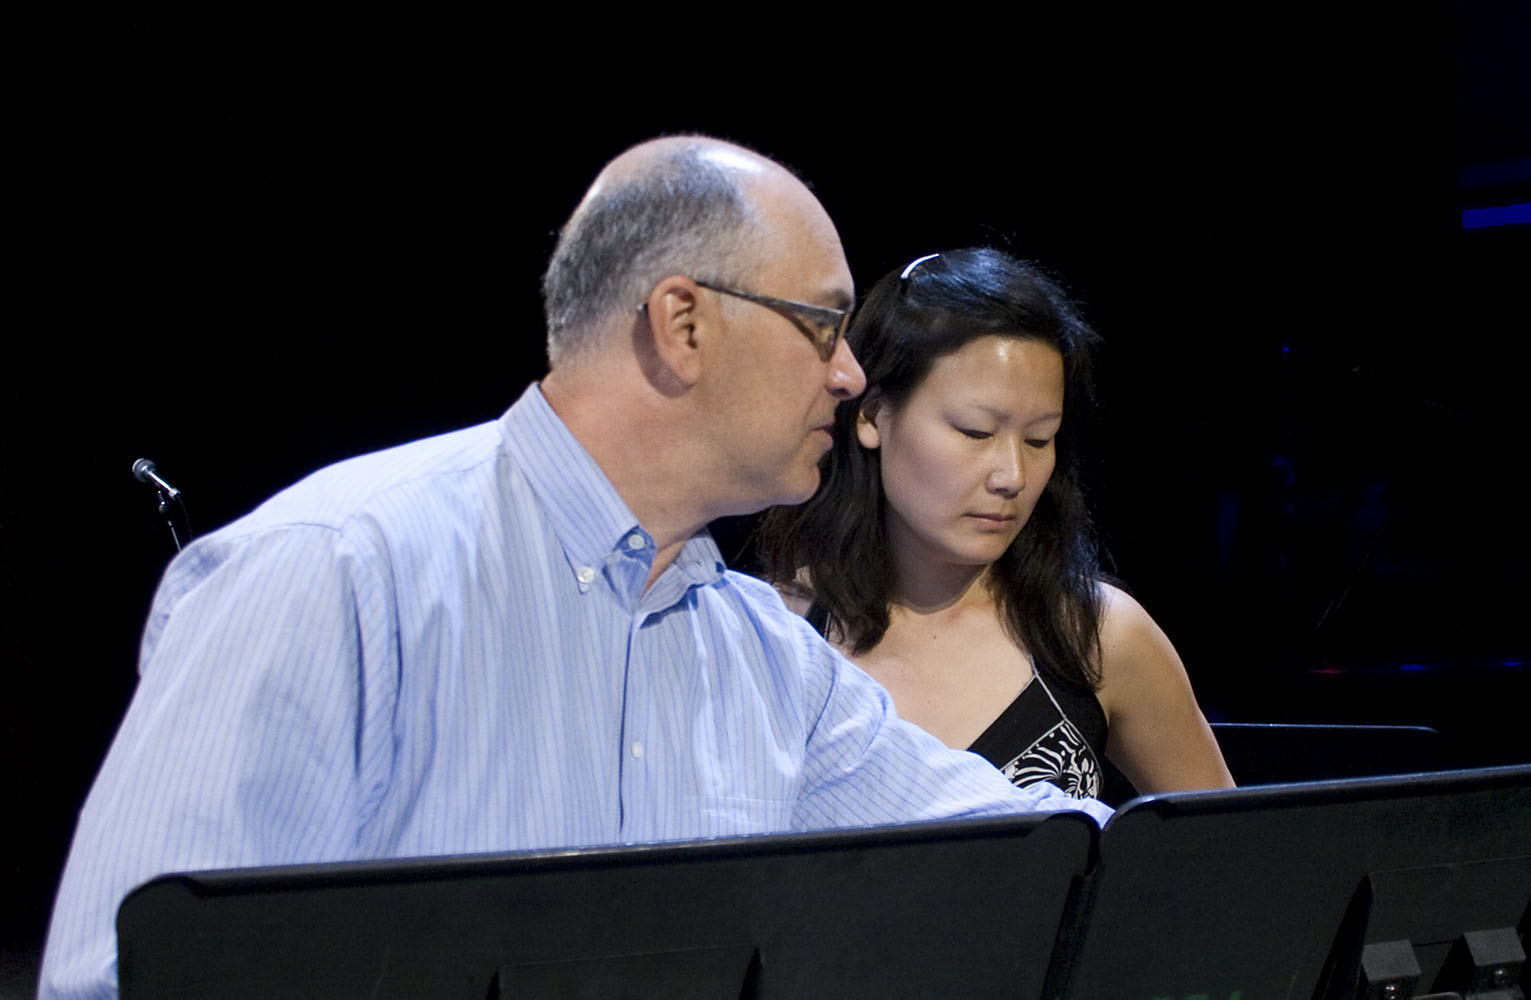 Composer David Felder Discussing His Piece Another Face With Violinist Lina Bahn  1